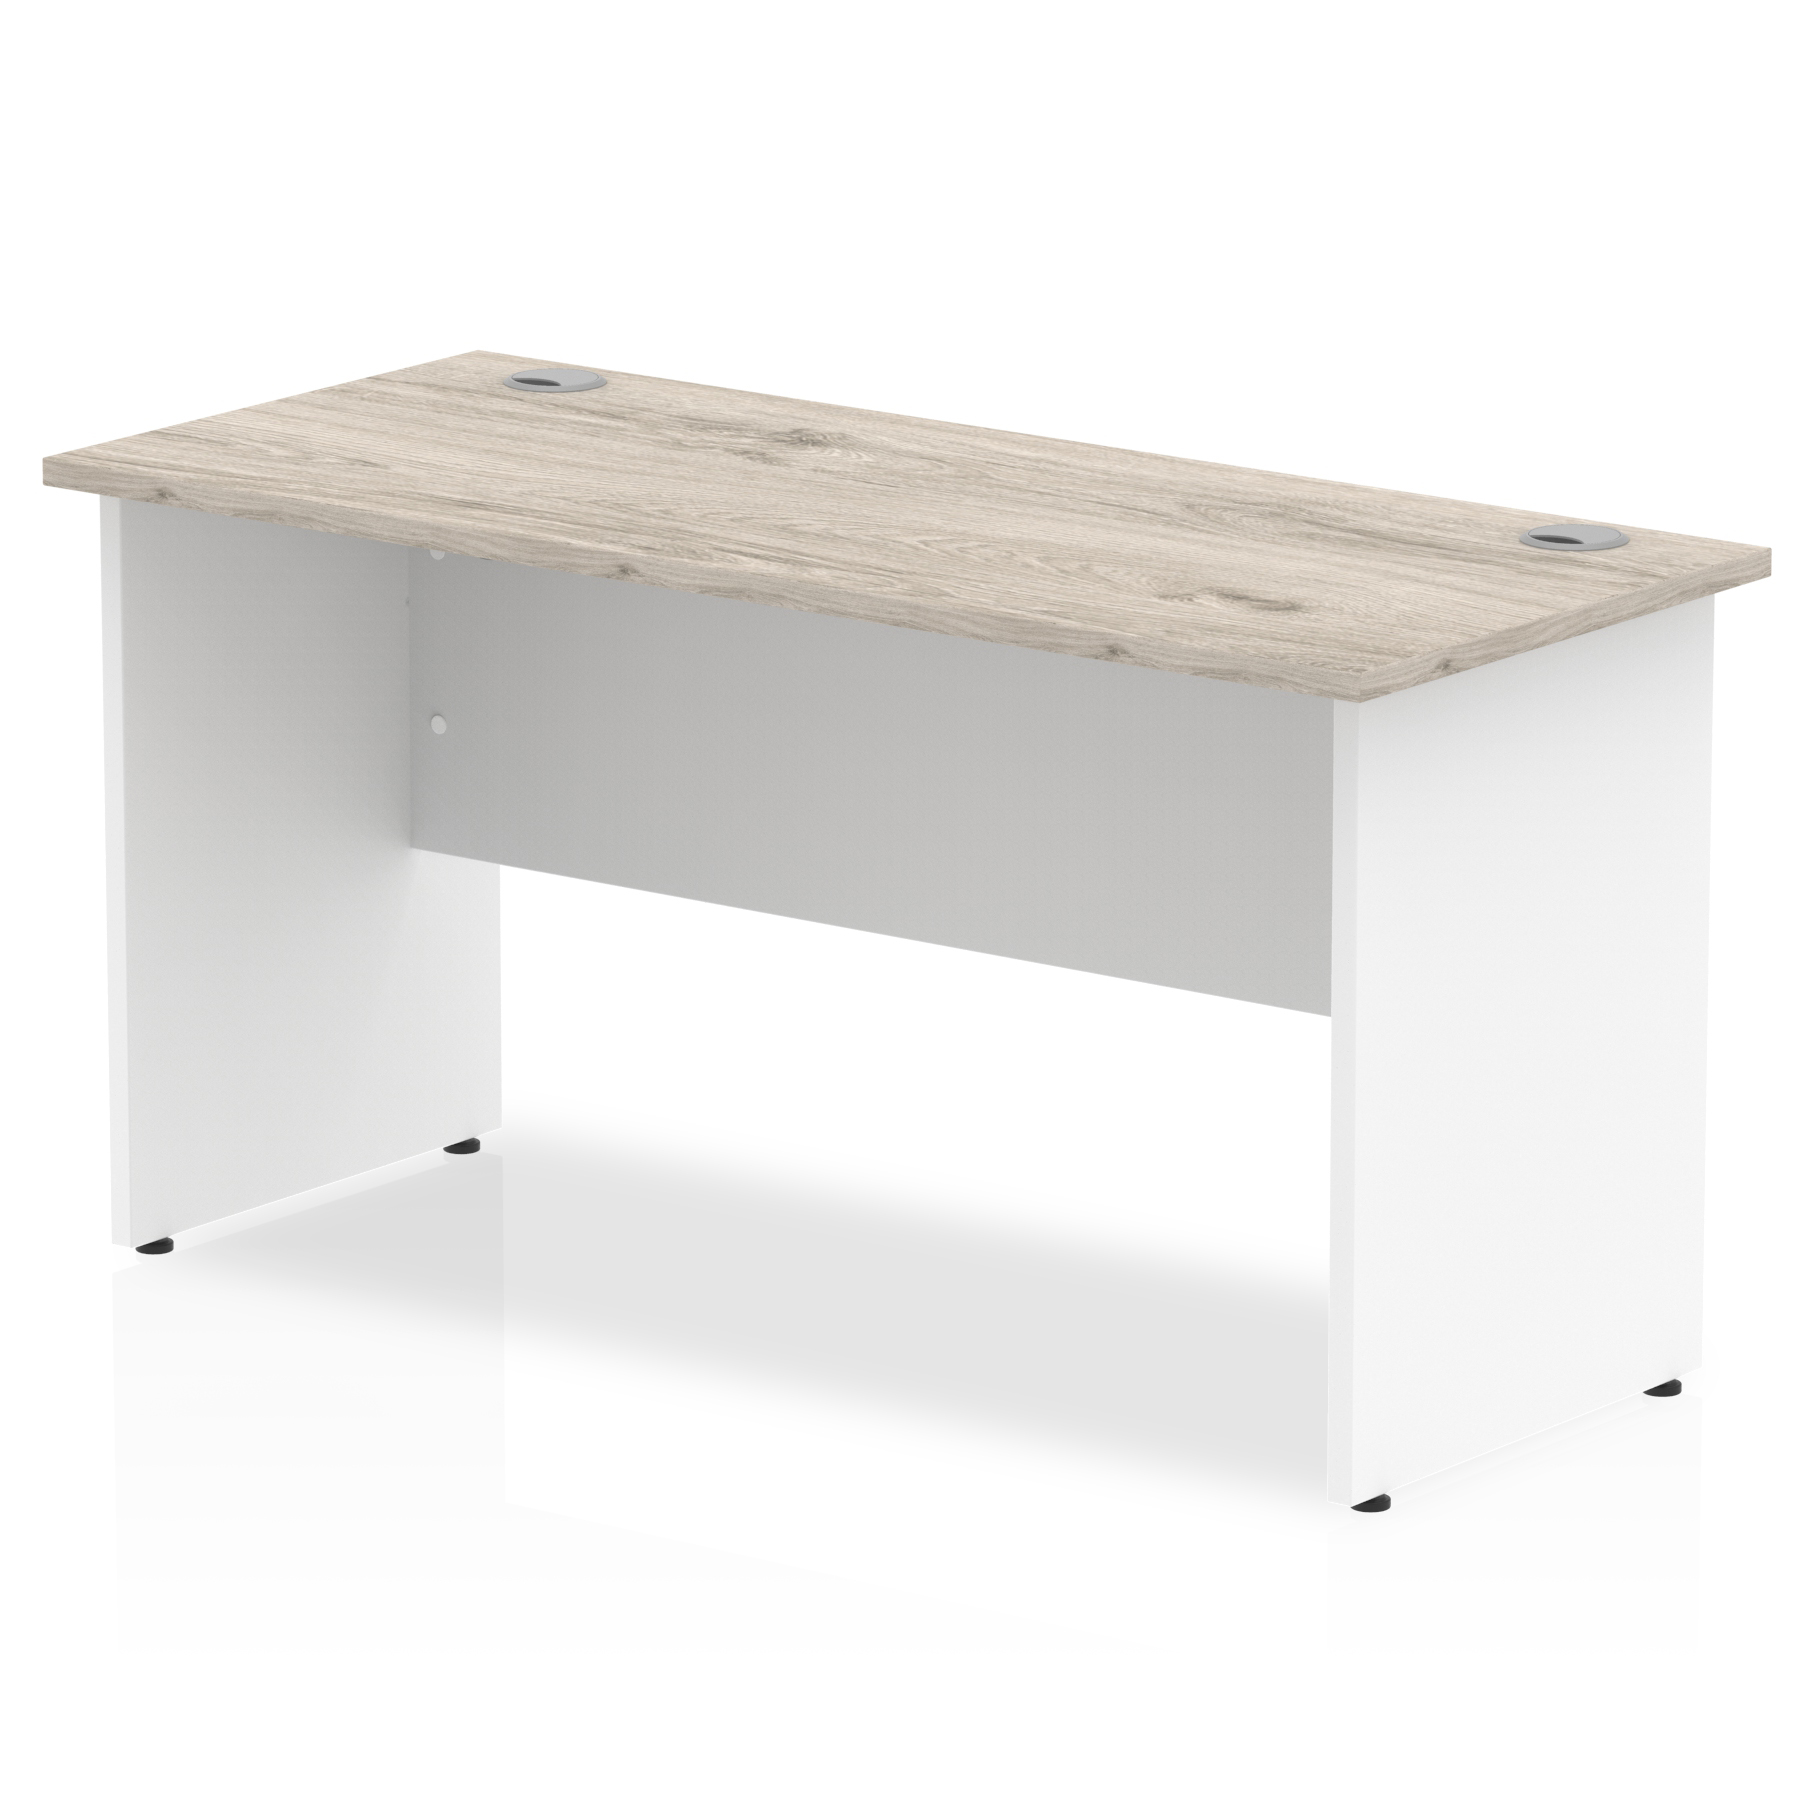 Desks Trexus Slim Rectangular Desk Panel End Leg 1400x600mm Grey Oak/White Ref TT000150